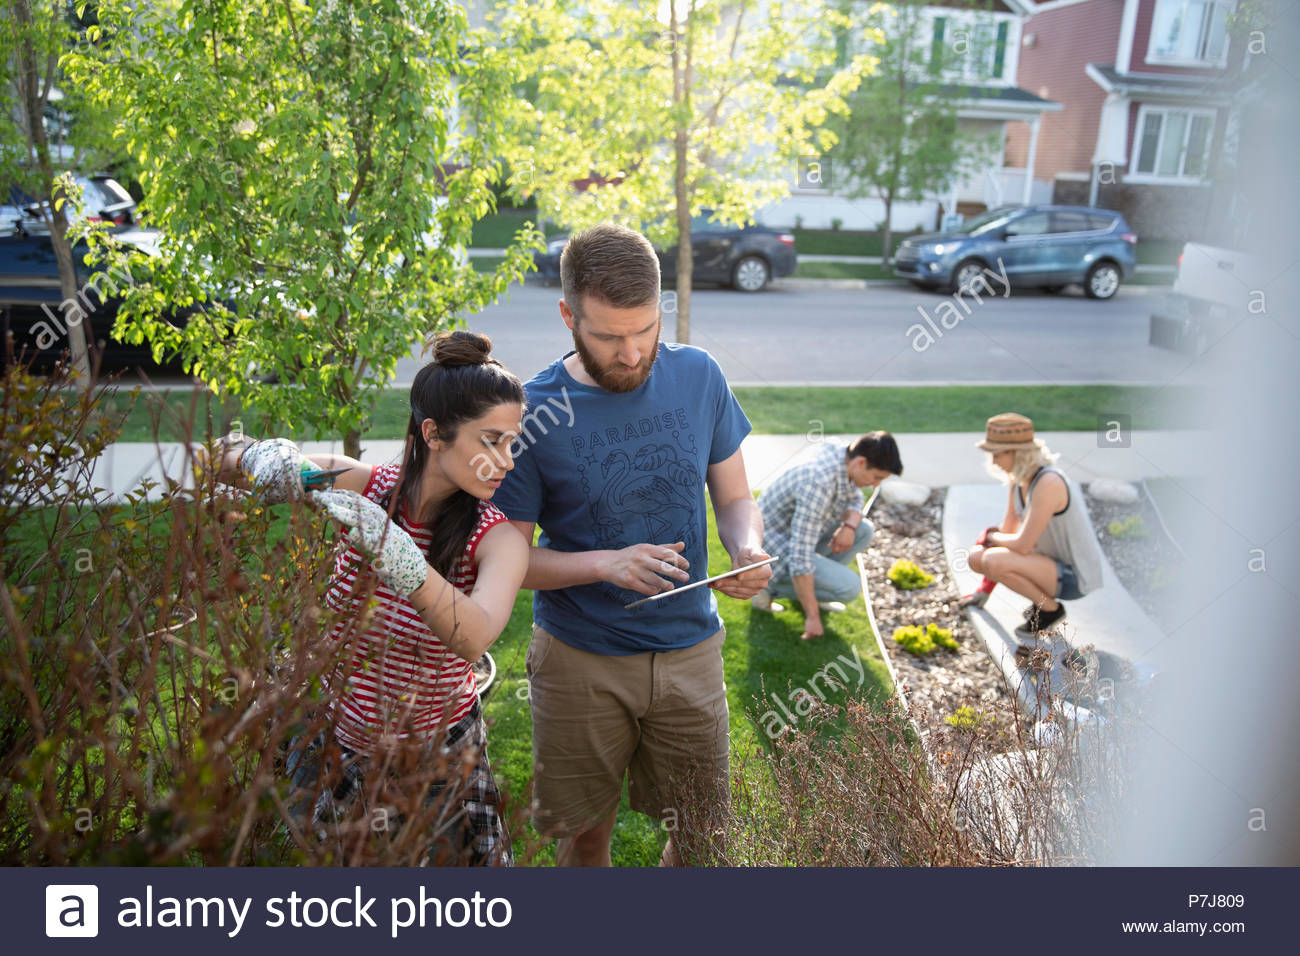 Couples with digital tablet gardening, doing yard work in front yard - Stock Image